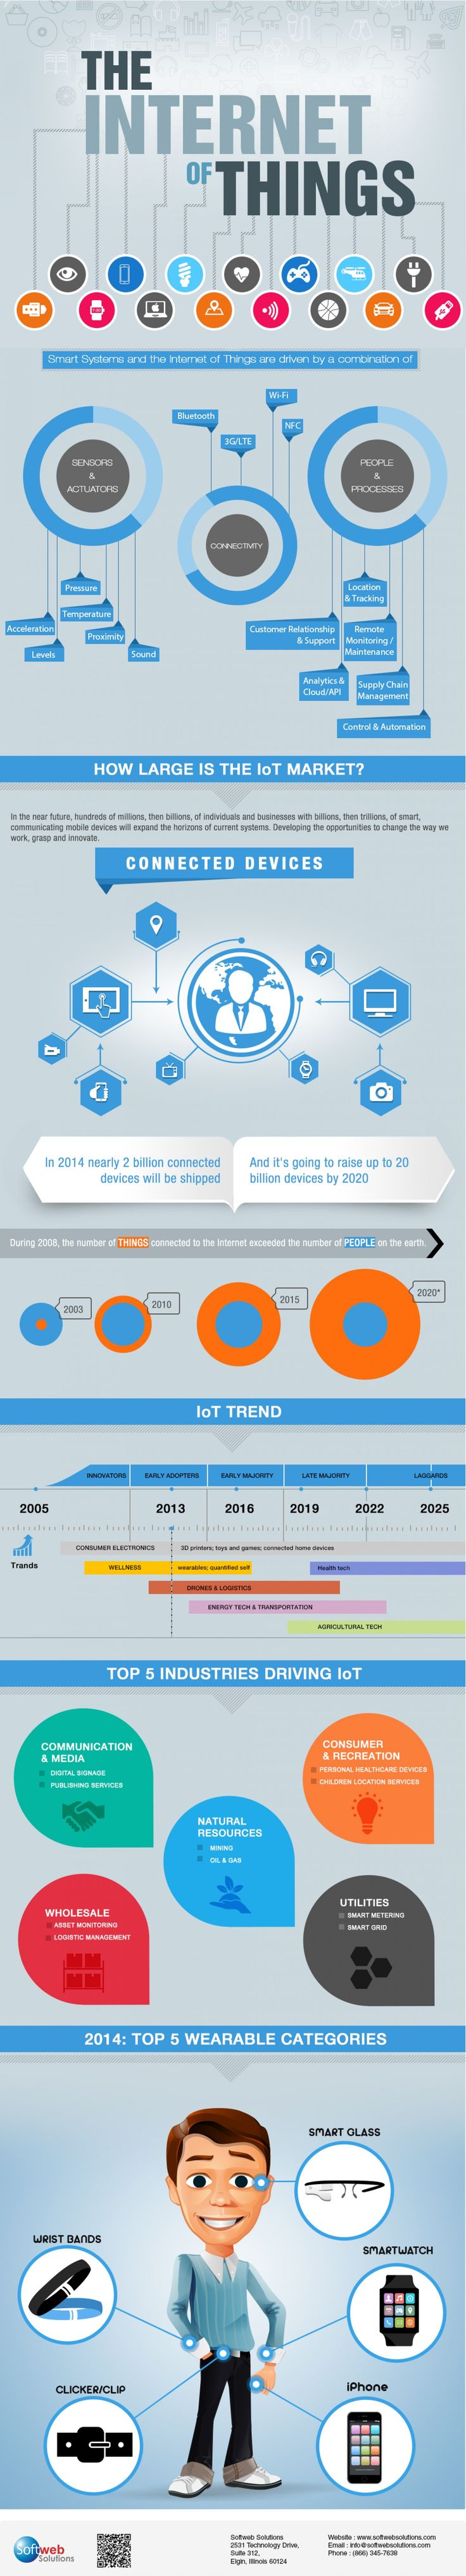 IoT - Internet of Things is changing the way we live   Visual.ly